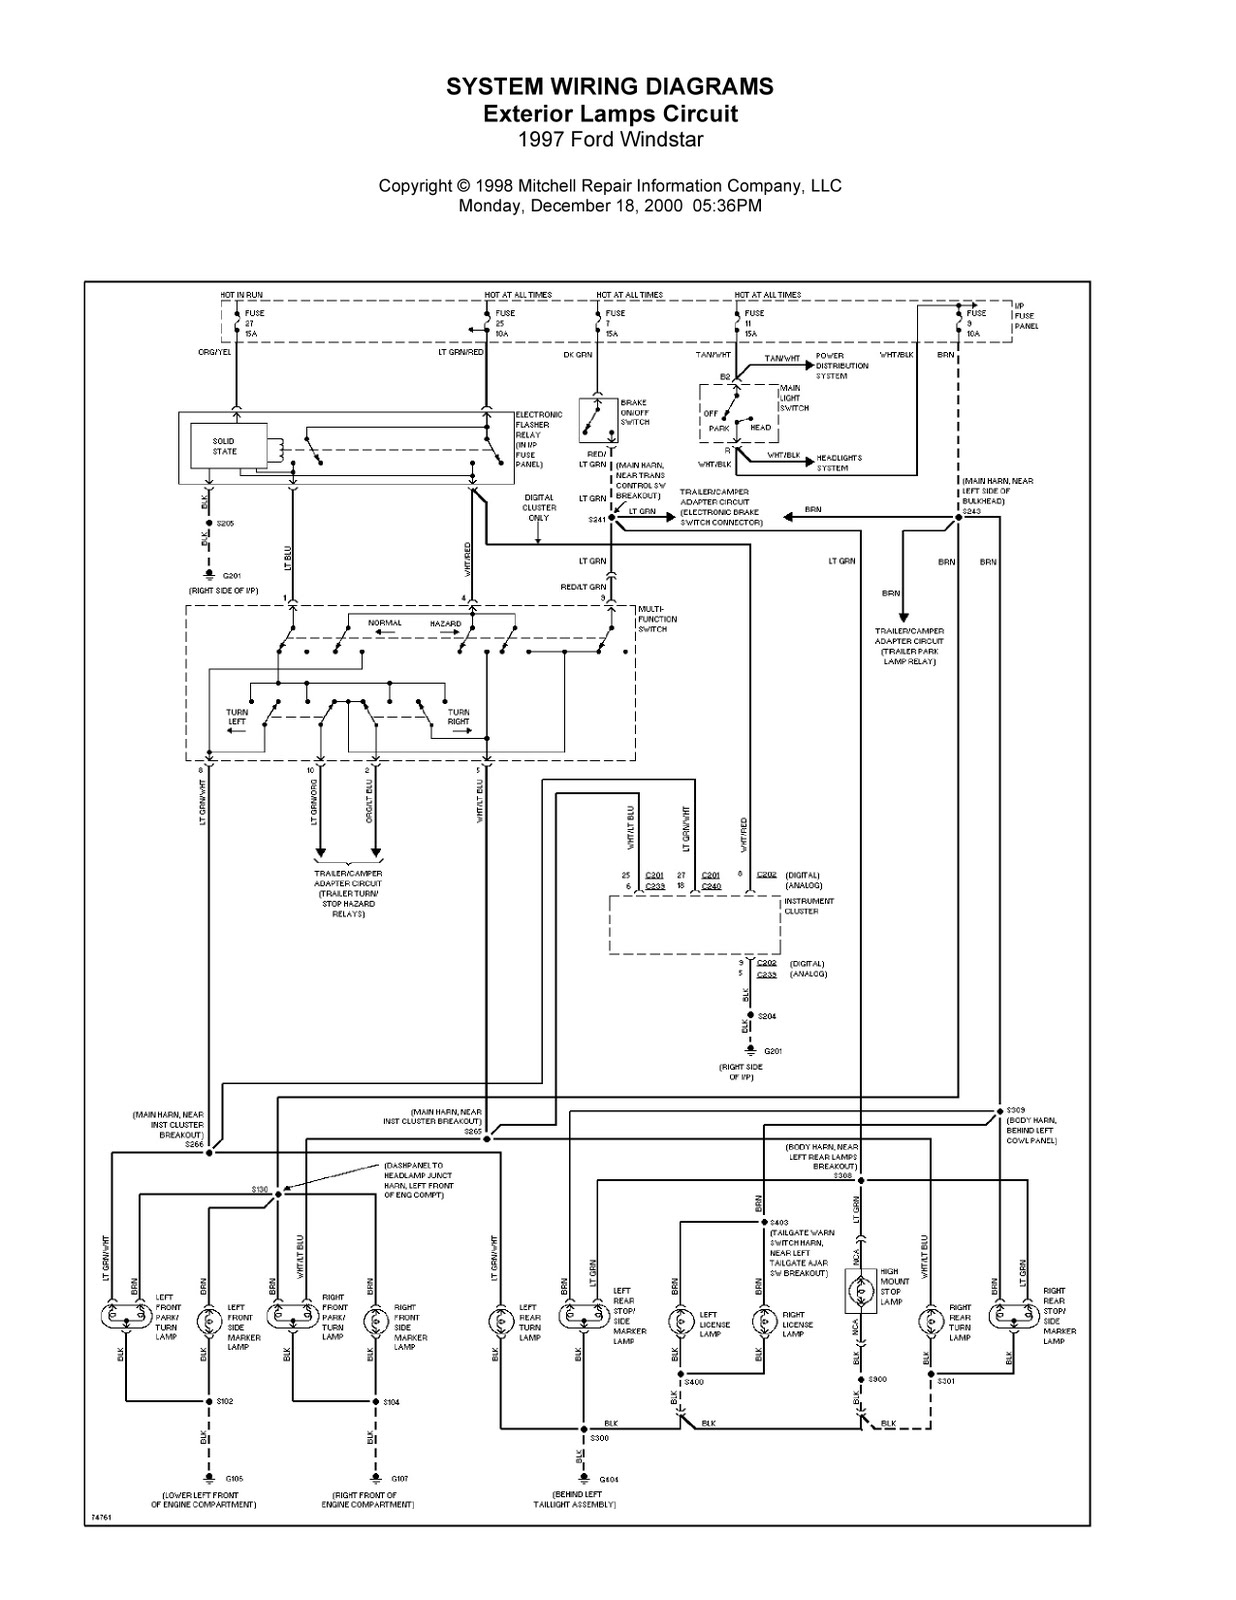 1996 Windstar Ac Wire Diagram